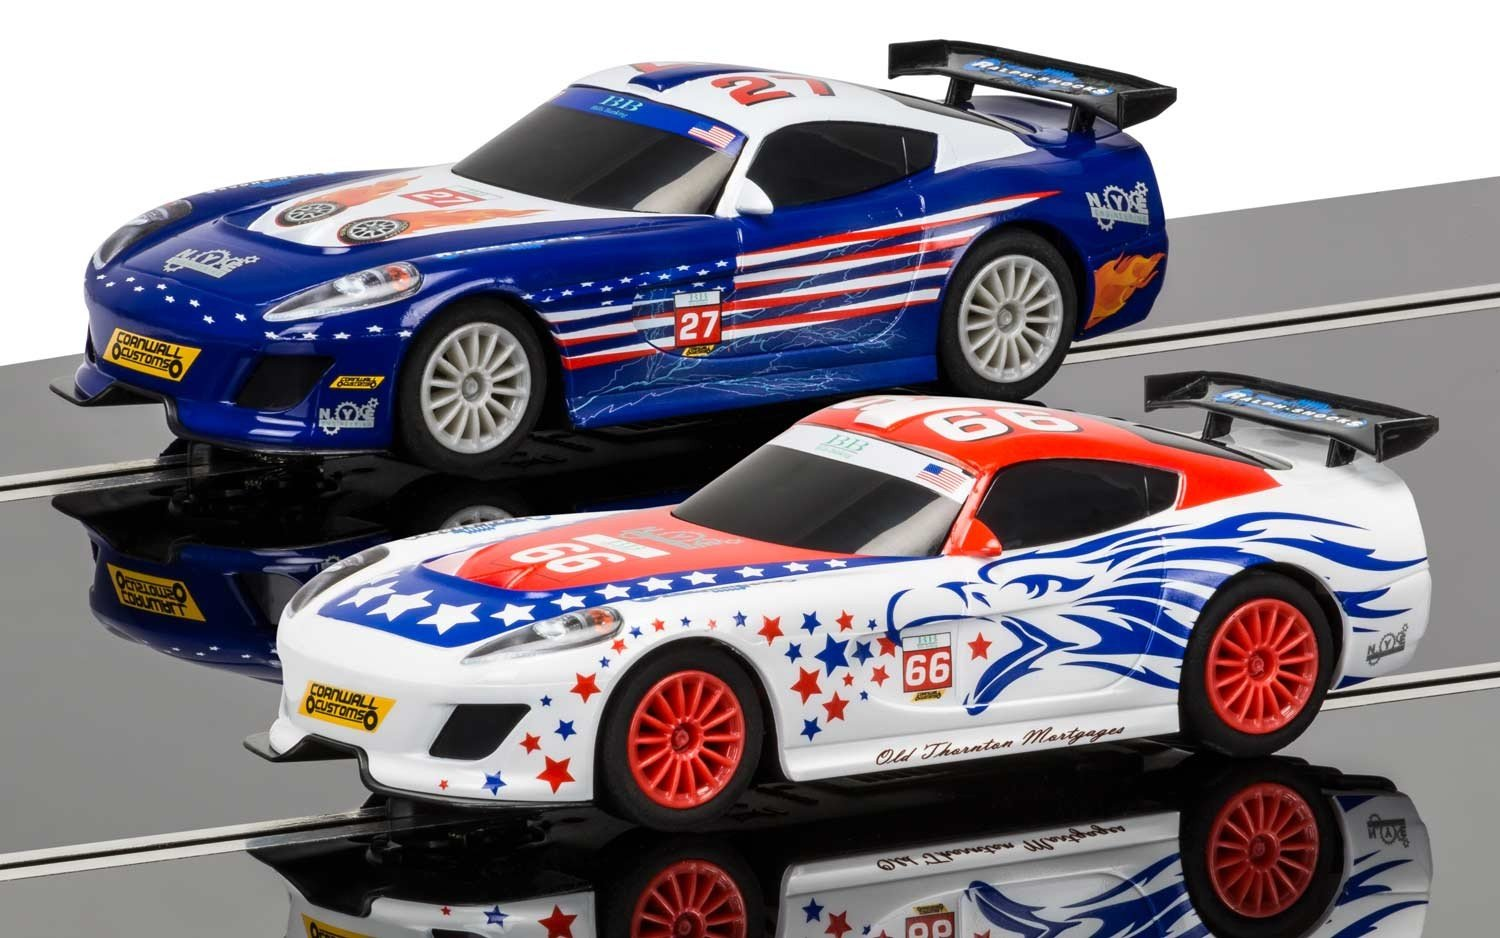 Scalextric America GT 1:32 Slot Car Race Track C1361T Playset by Scalextric (Image #3)